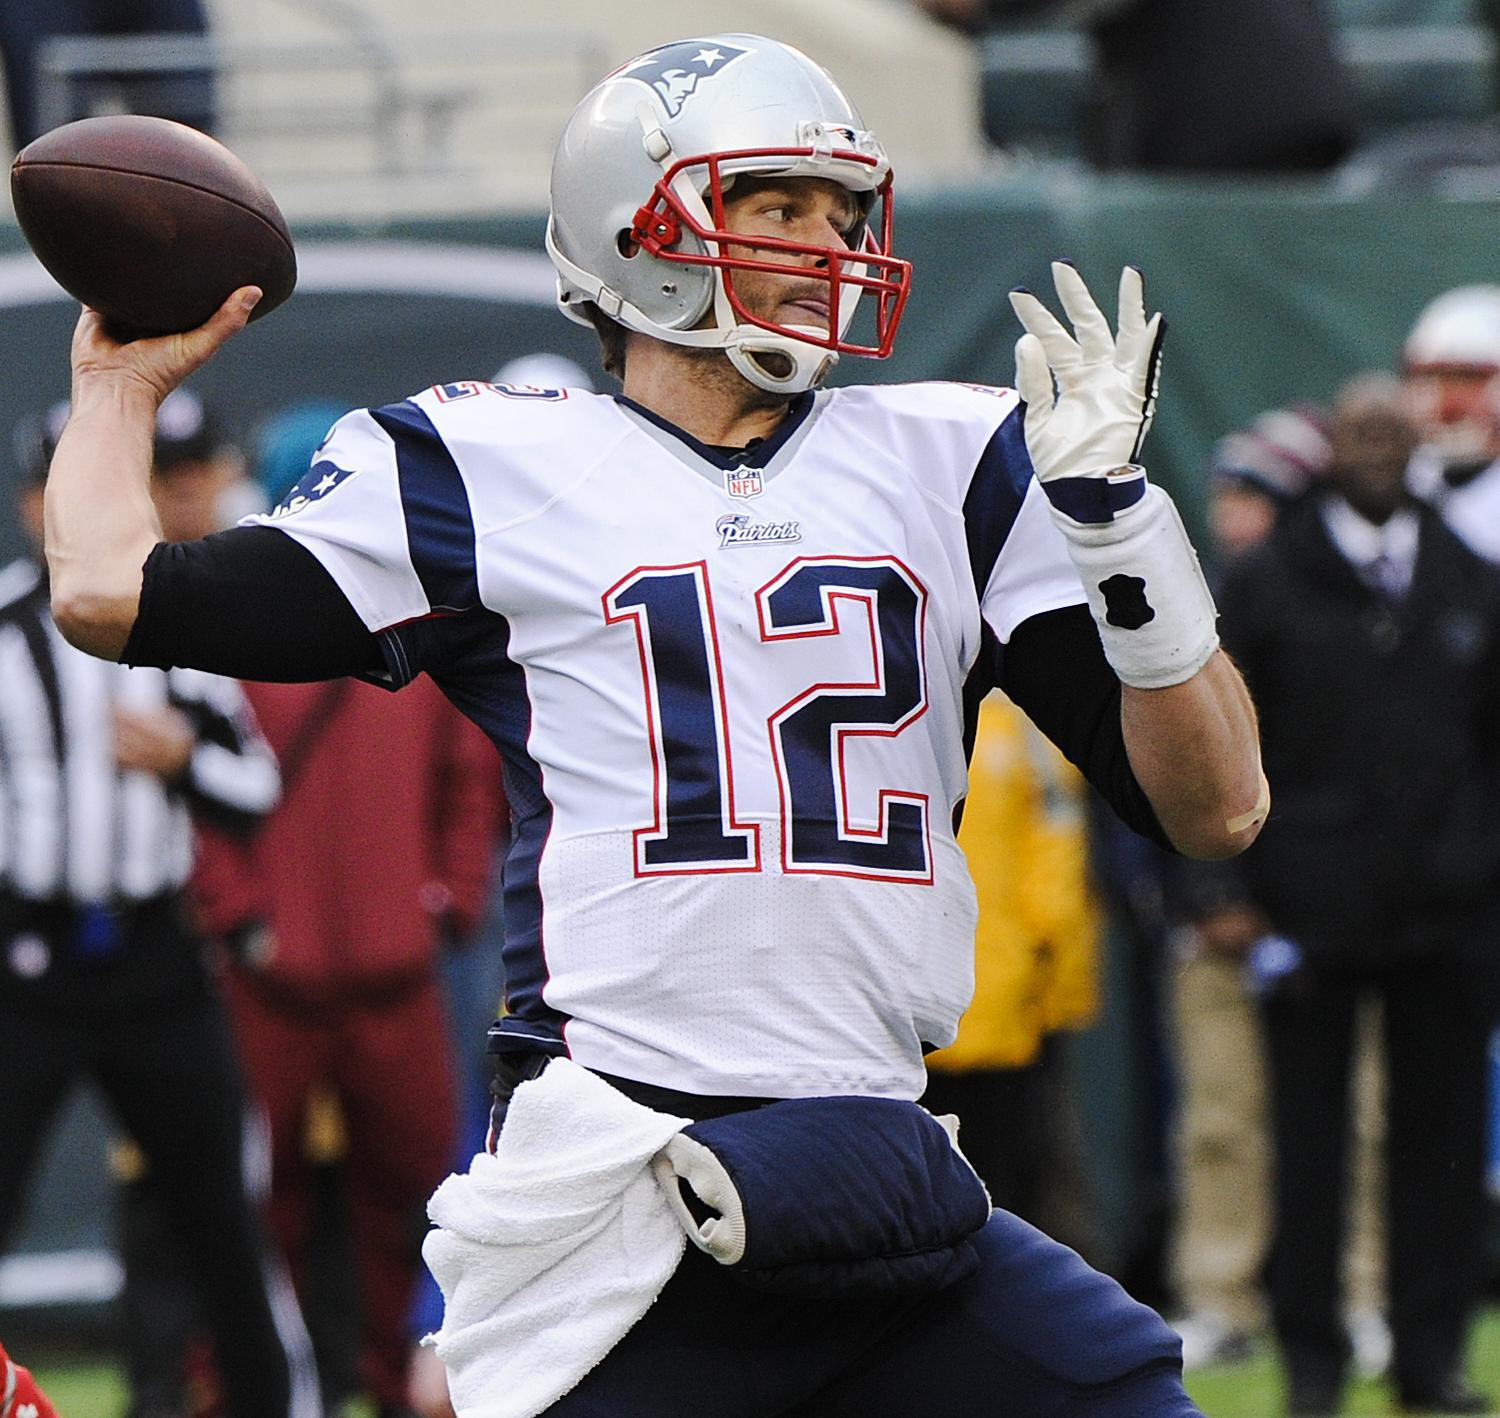 tom brady spends time with throwing coach during playoff - HD1500×1418